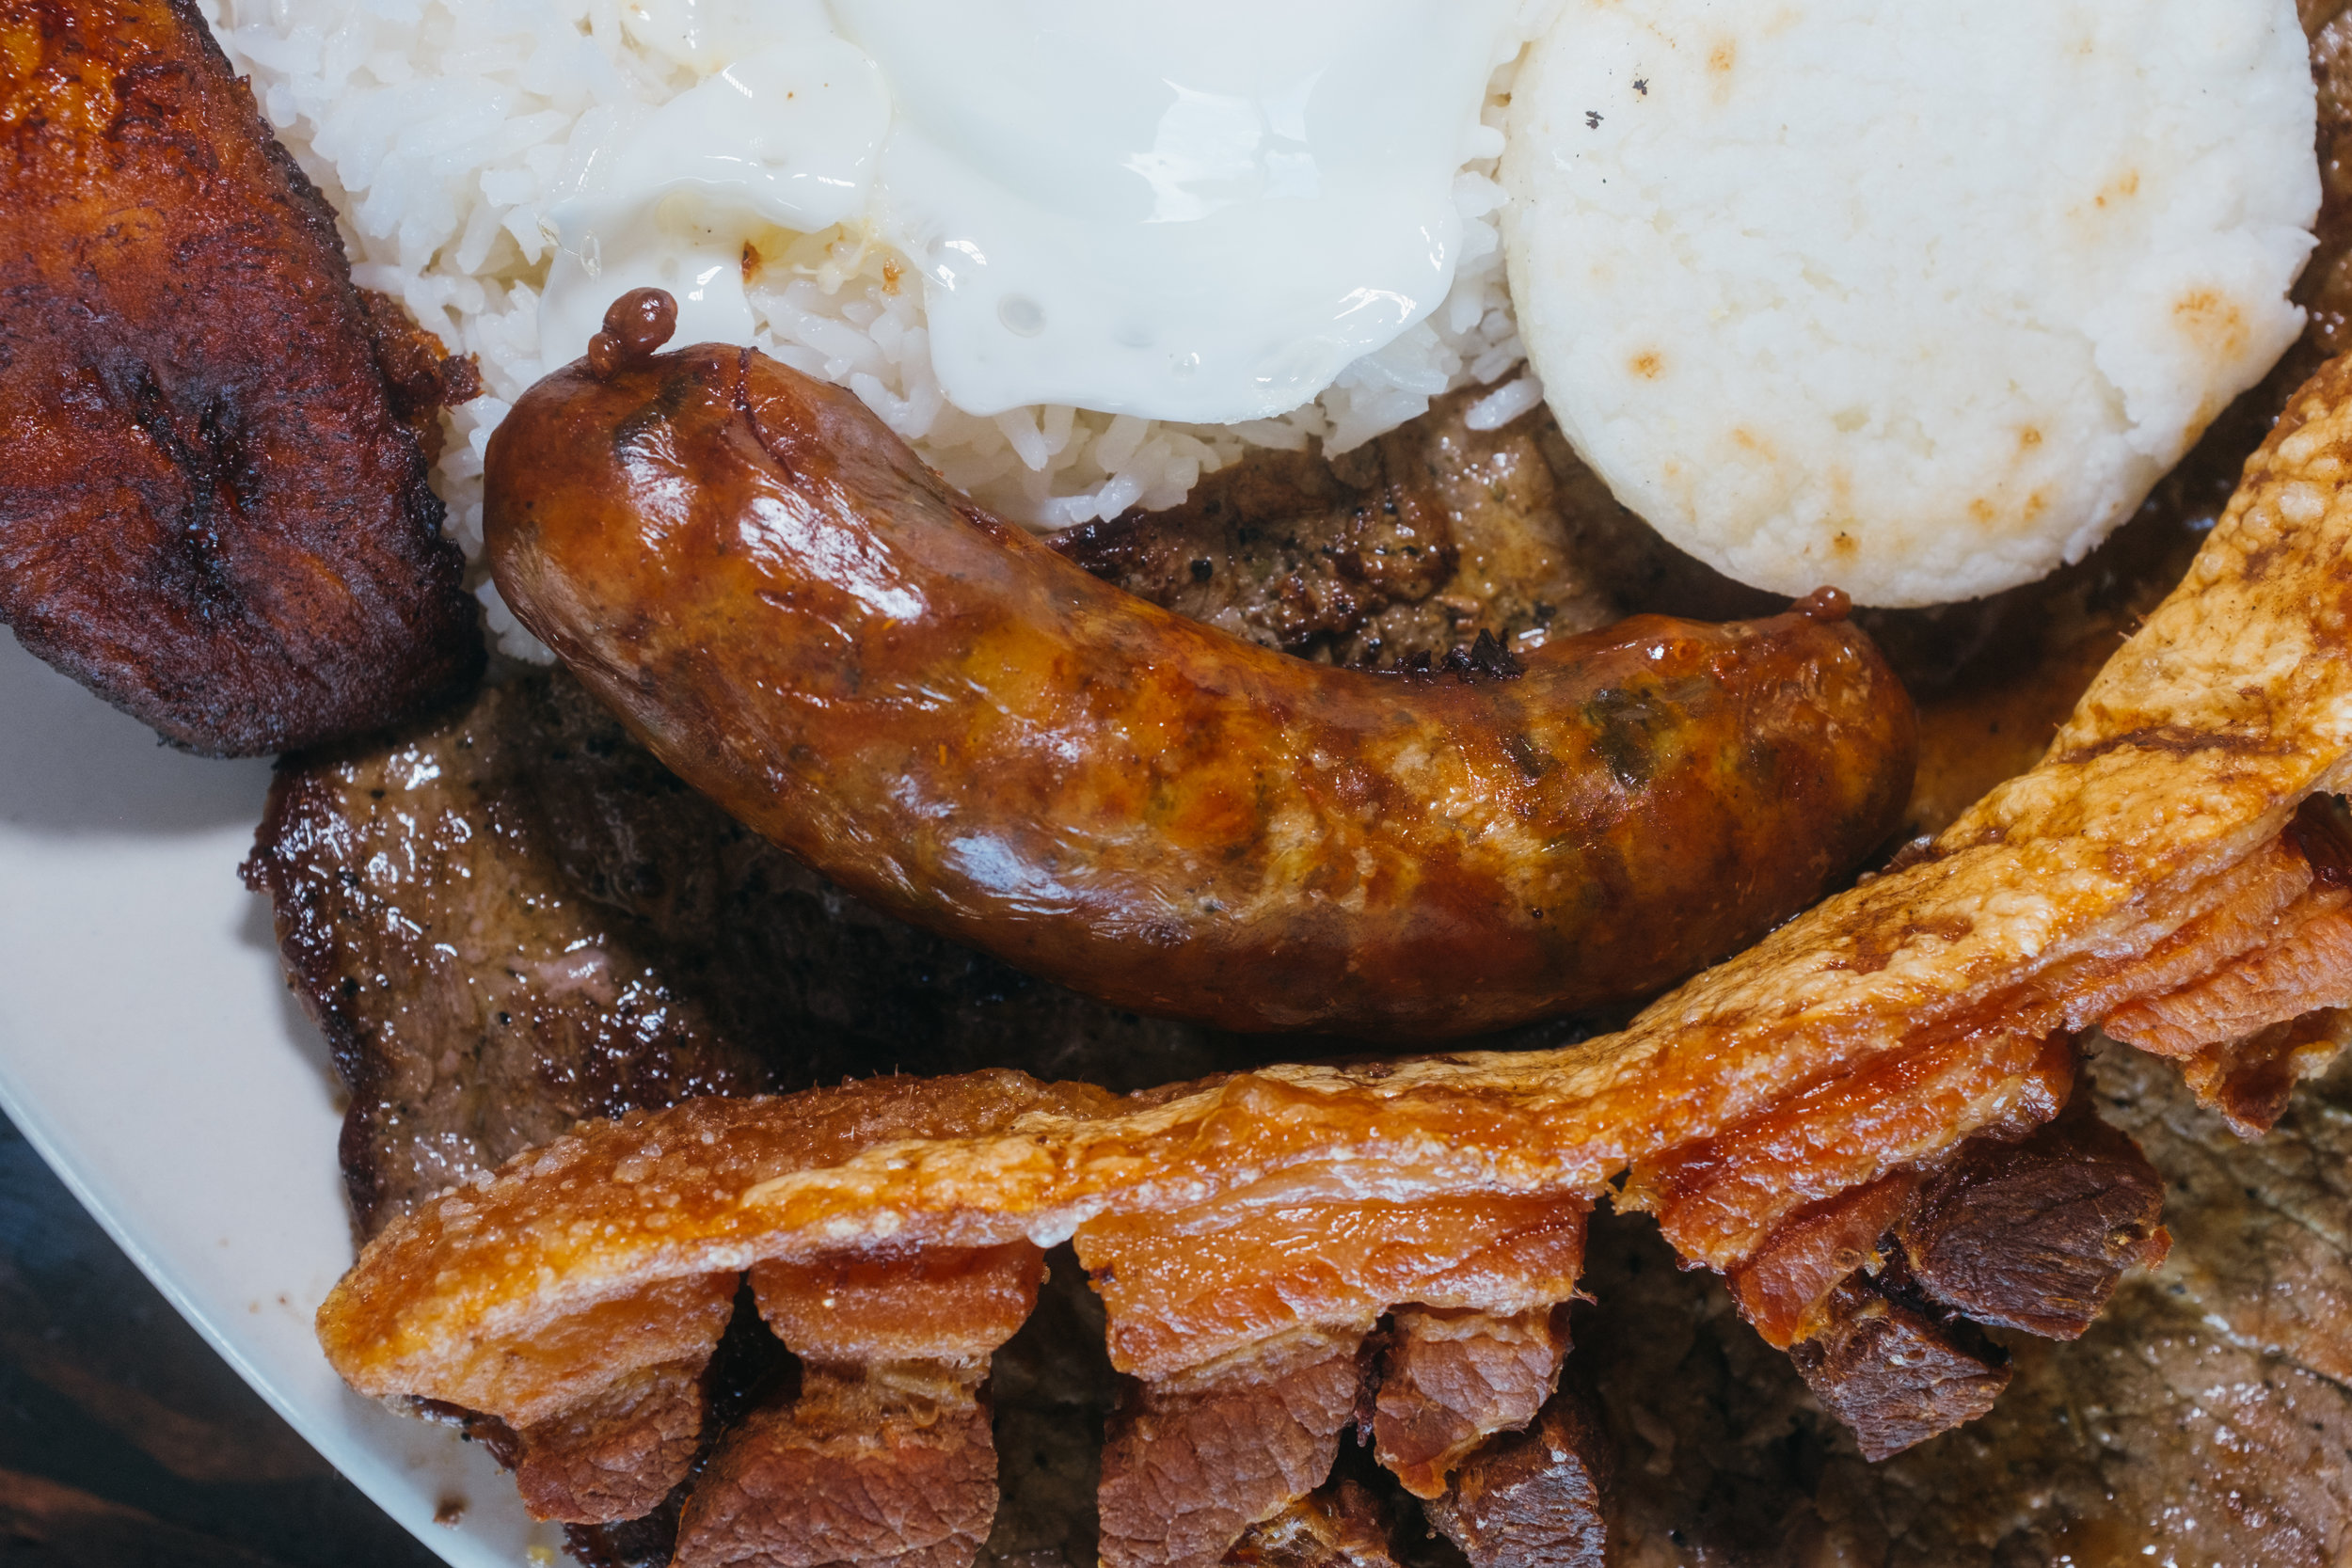 Chicharrón (deep fried bacon with all the fat) and chorizo (sausage)